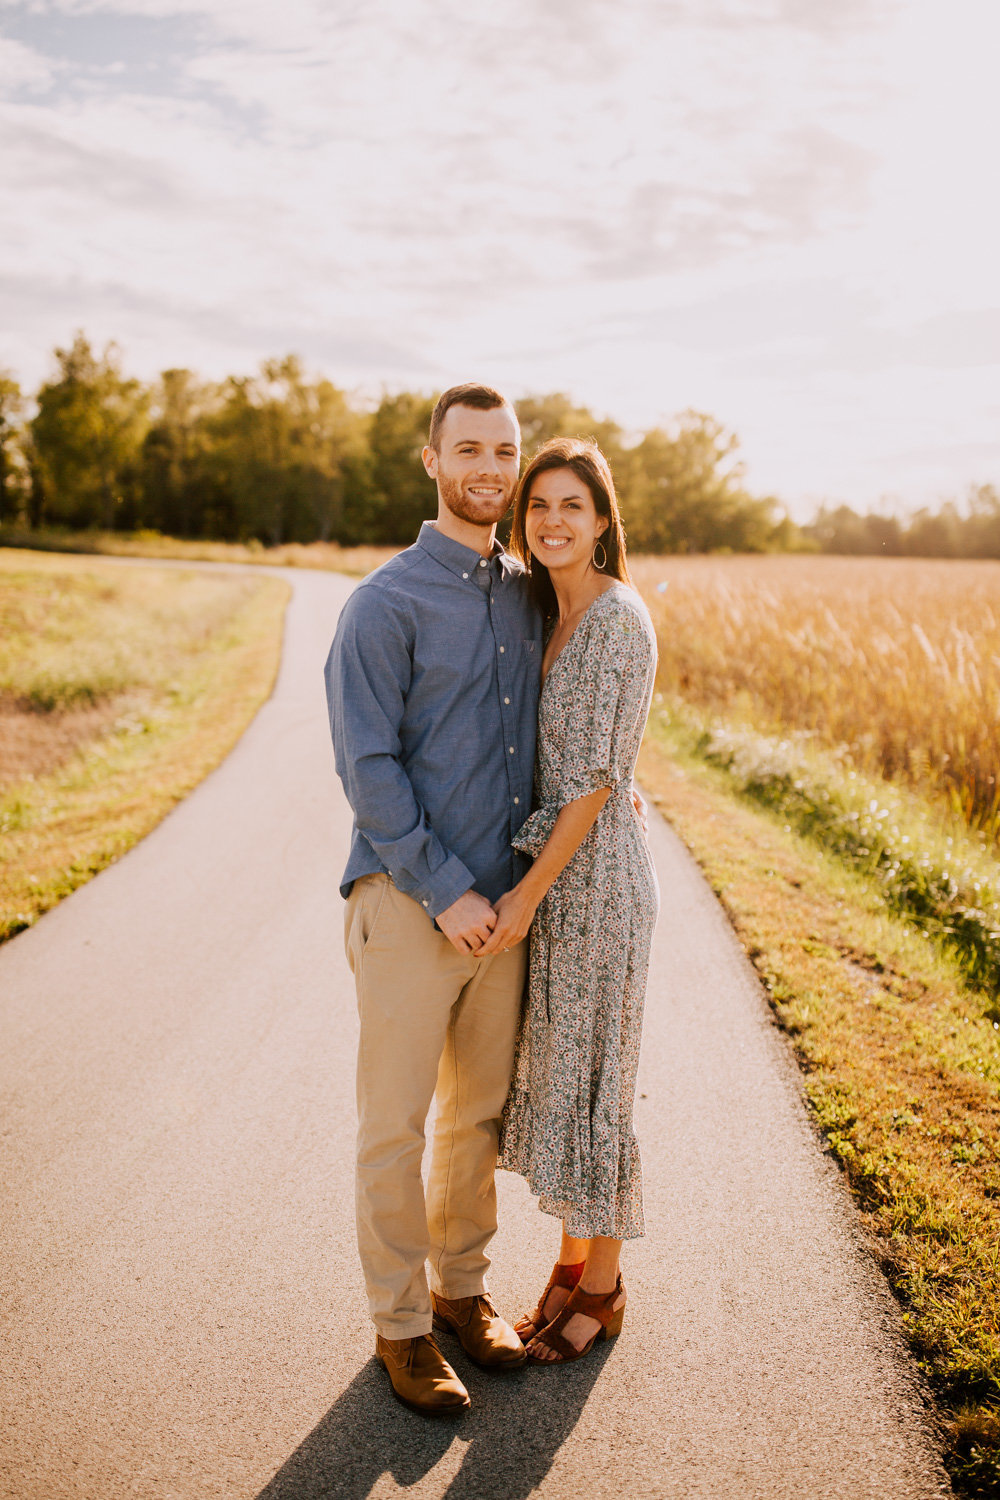 Sunset-Autumn-Engagement-Session-Prophetstown-1